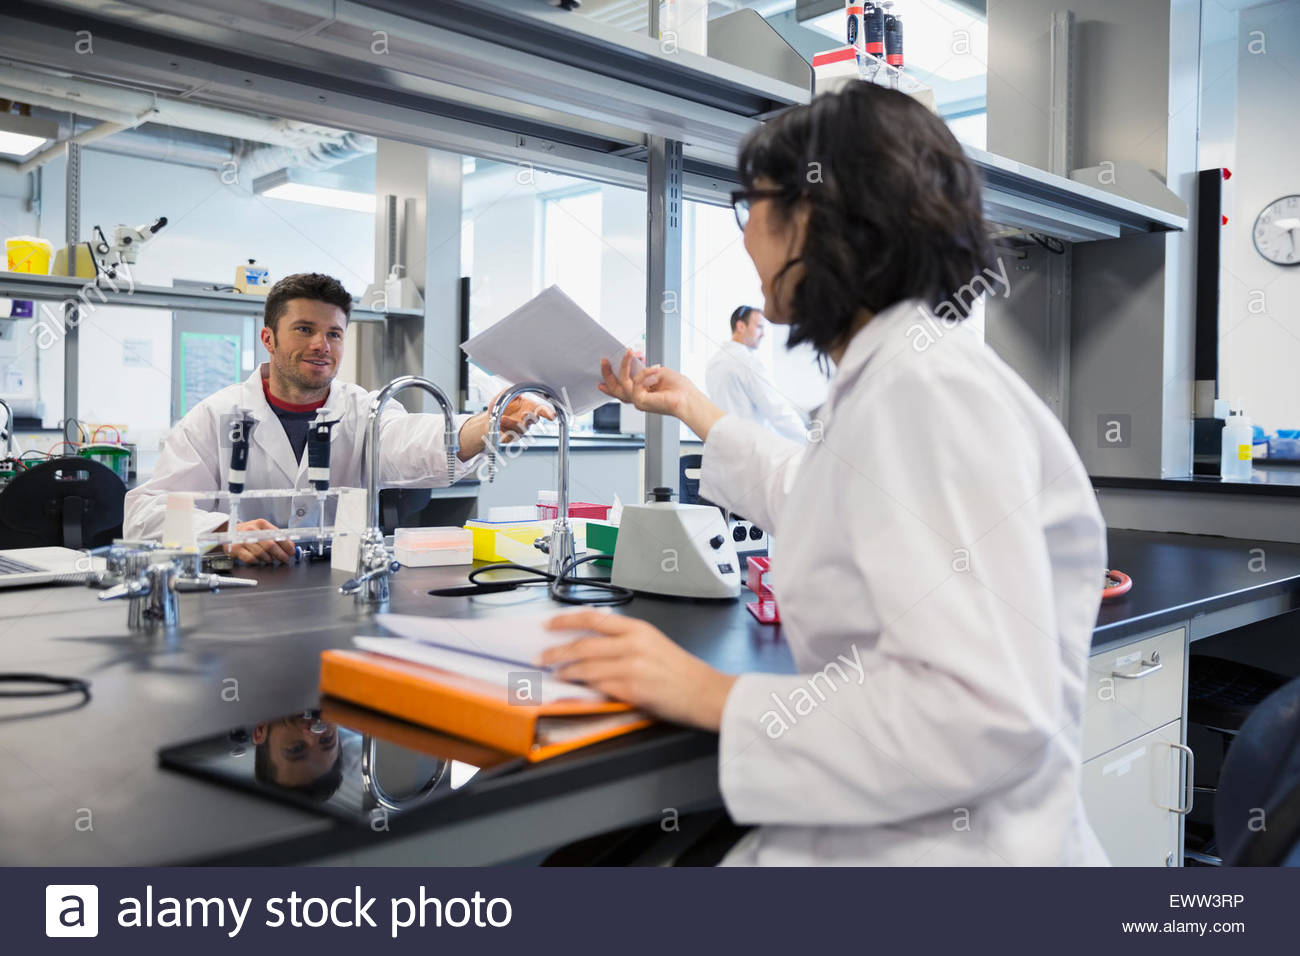 Scientists passing paperwork across laboratory table - Stock Image